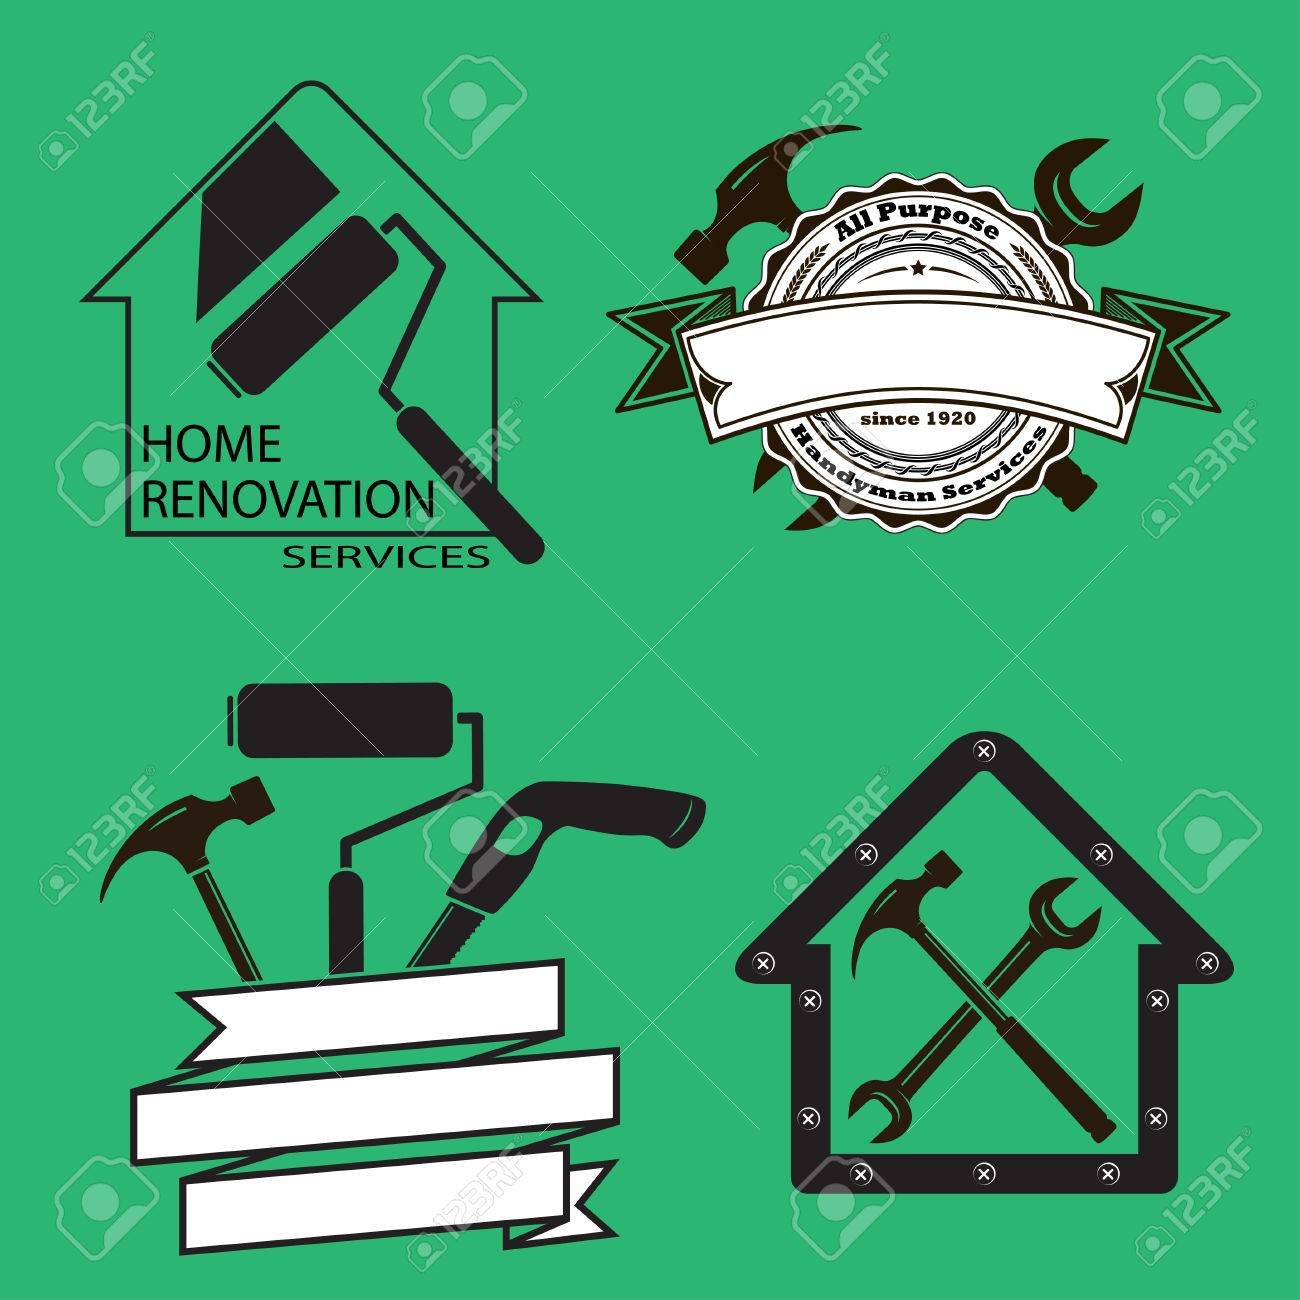 Black And White Cartoon Illustration Of Worker With Level Or.. Royalty Free  Cliparts, Vectors, And Stock Illustration. Image 25510138.